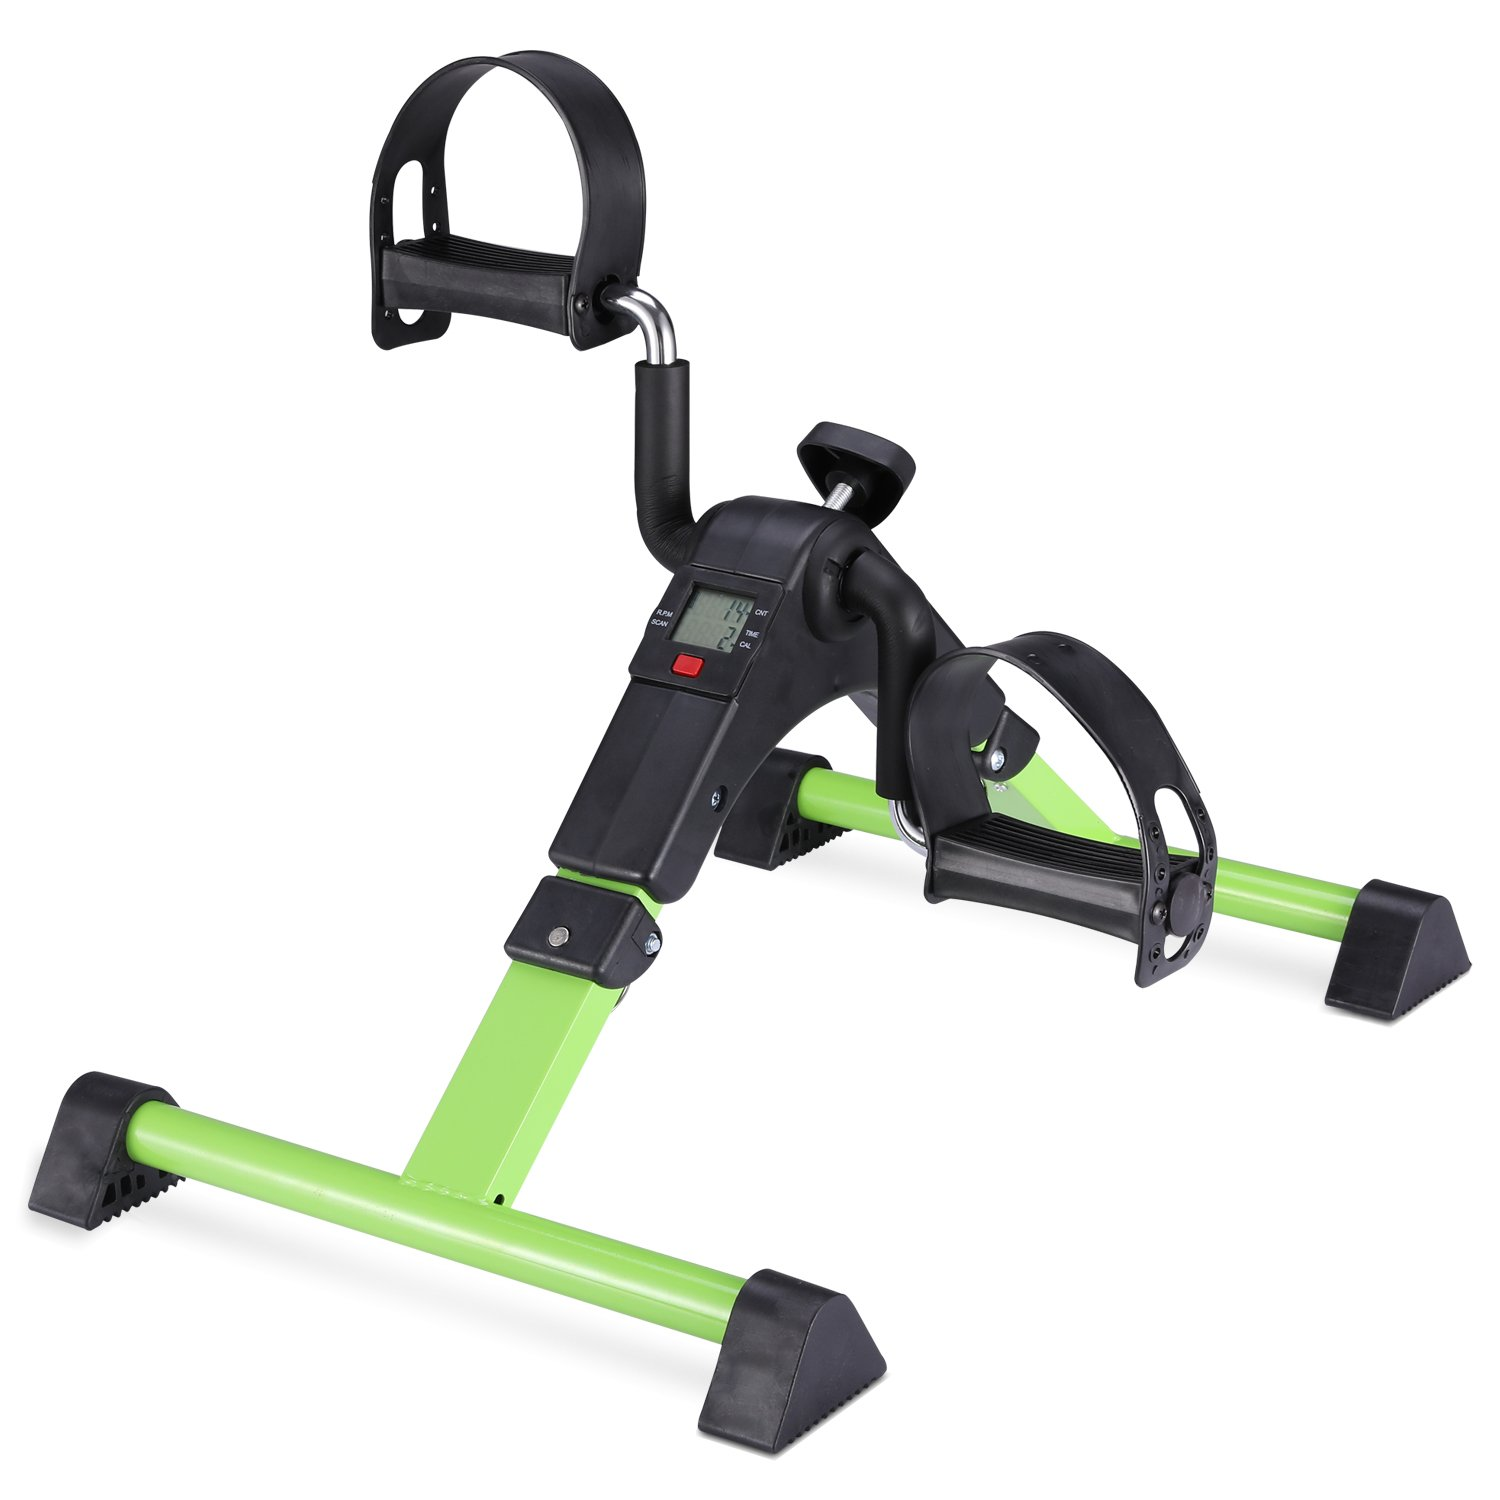 MOMODA Stationary Cycle Pedal Exerciser Desk Exercise Bike with LCD Monitor Foldable Black Green